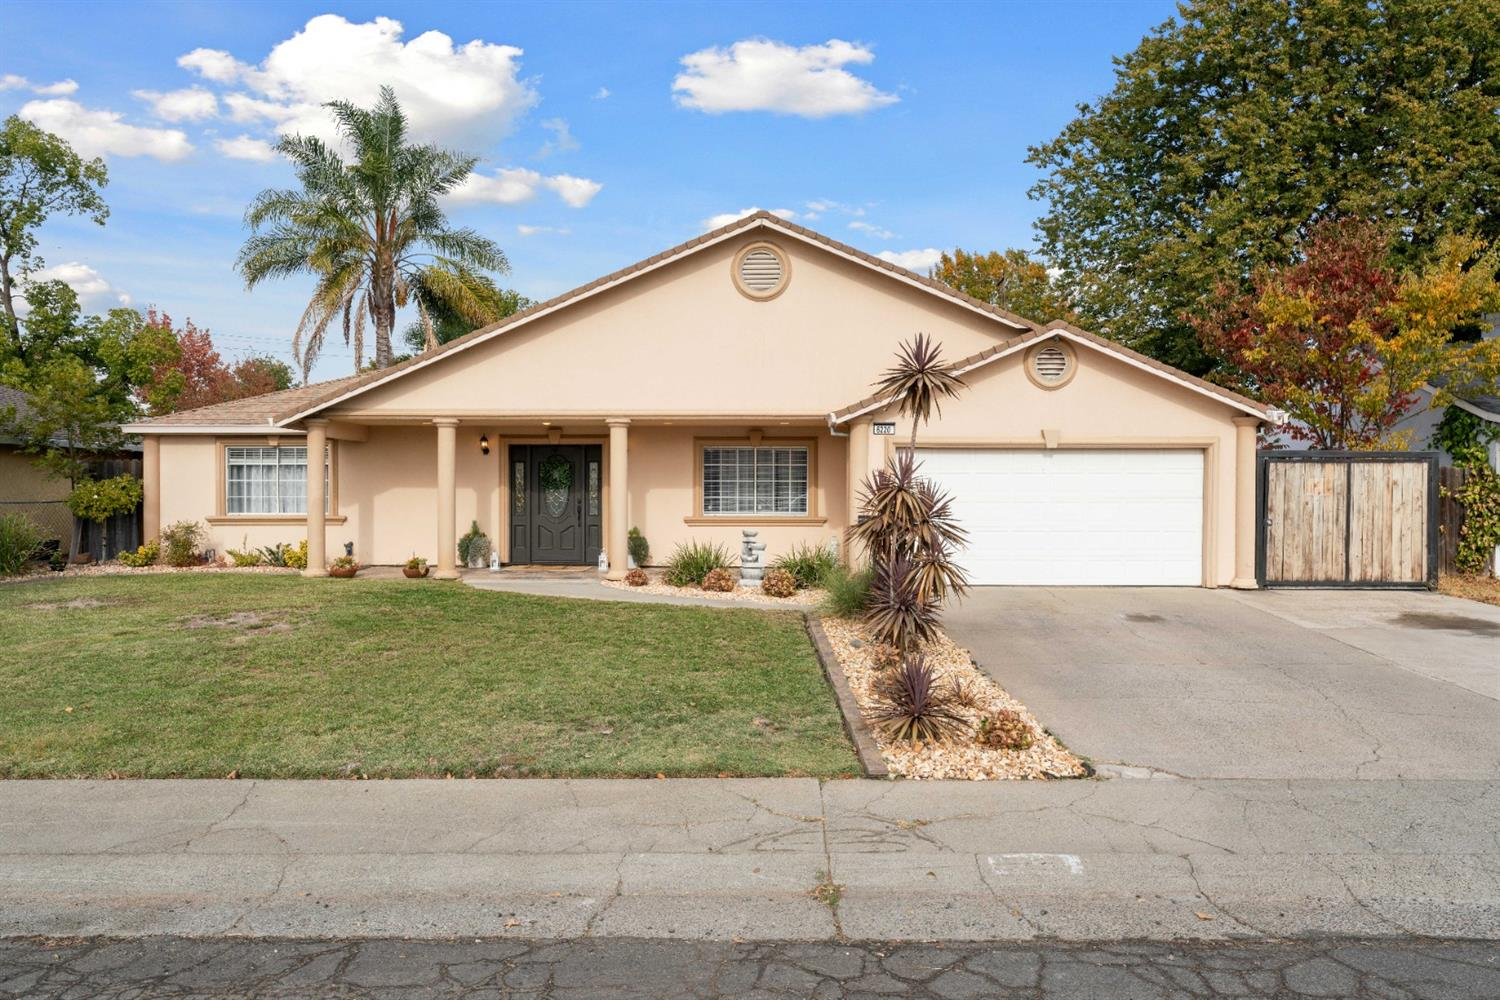 Must see this spacious fully renovated home in quite neighborhood! This home has been taken down to